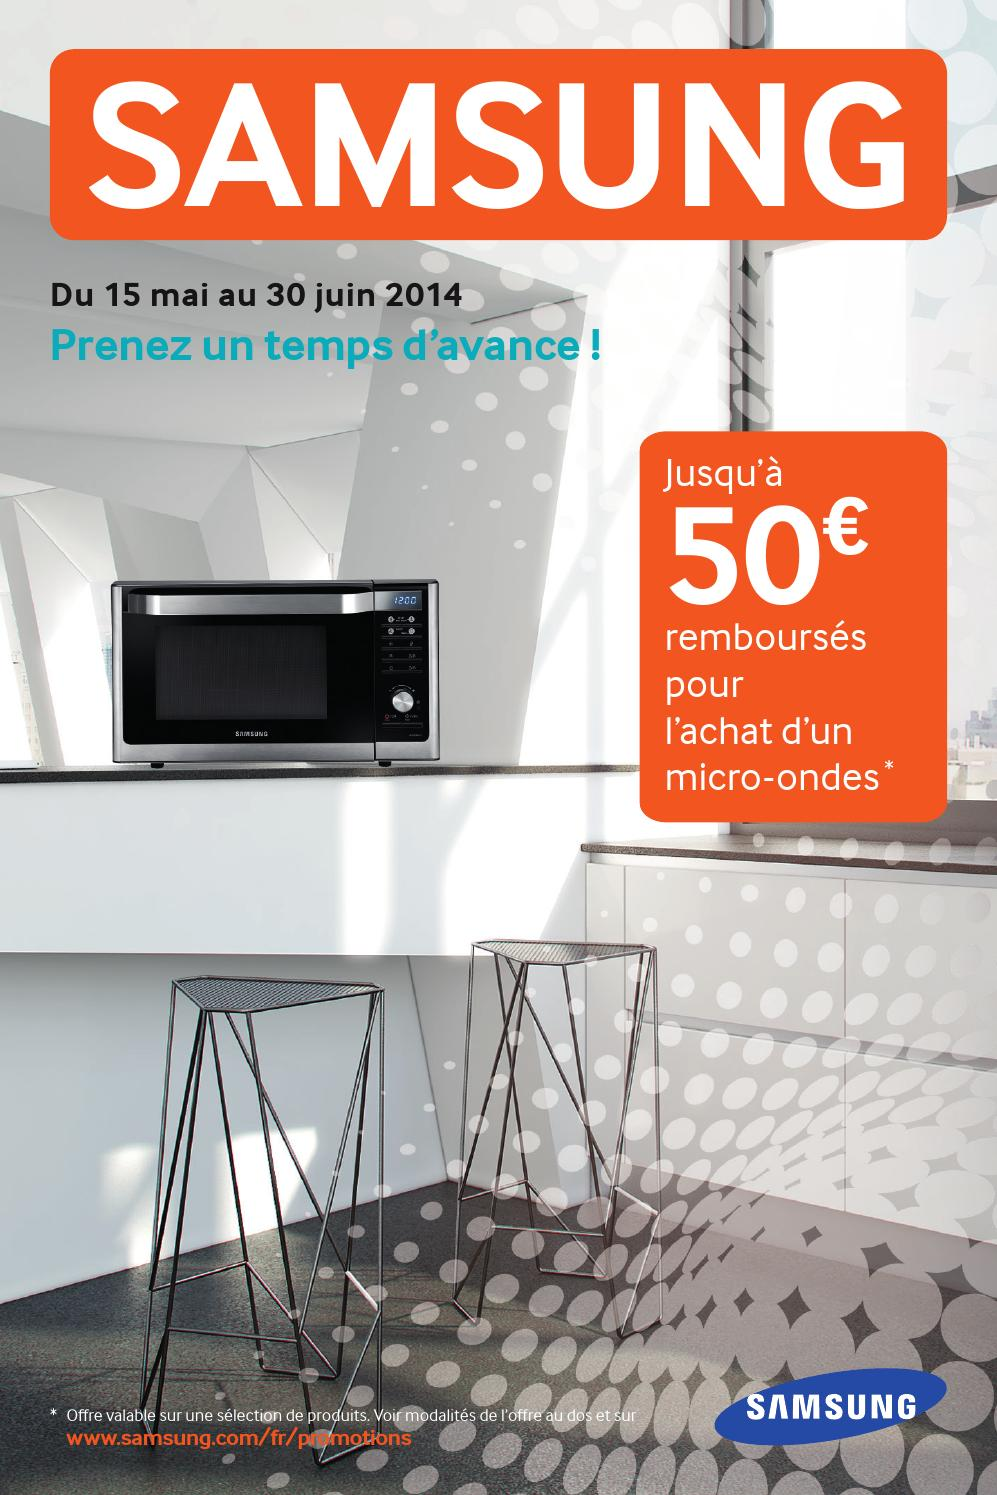 offre de remboursement samsung 50 sur micro ondes by anti issuu. Black Bedroom Furniture Sets. Home Design Ideas